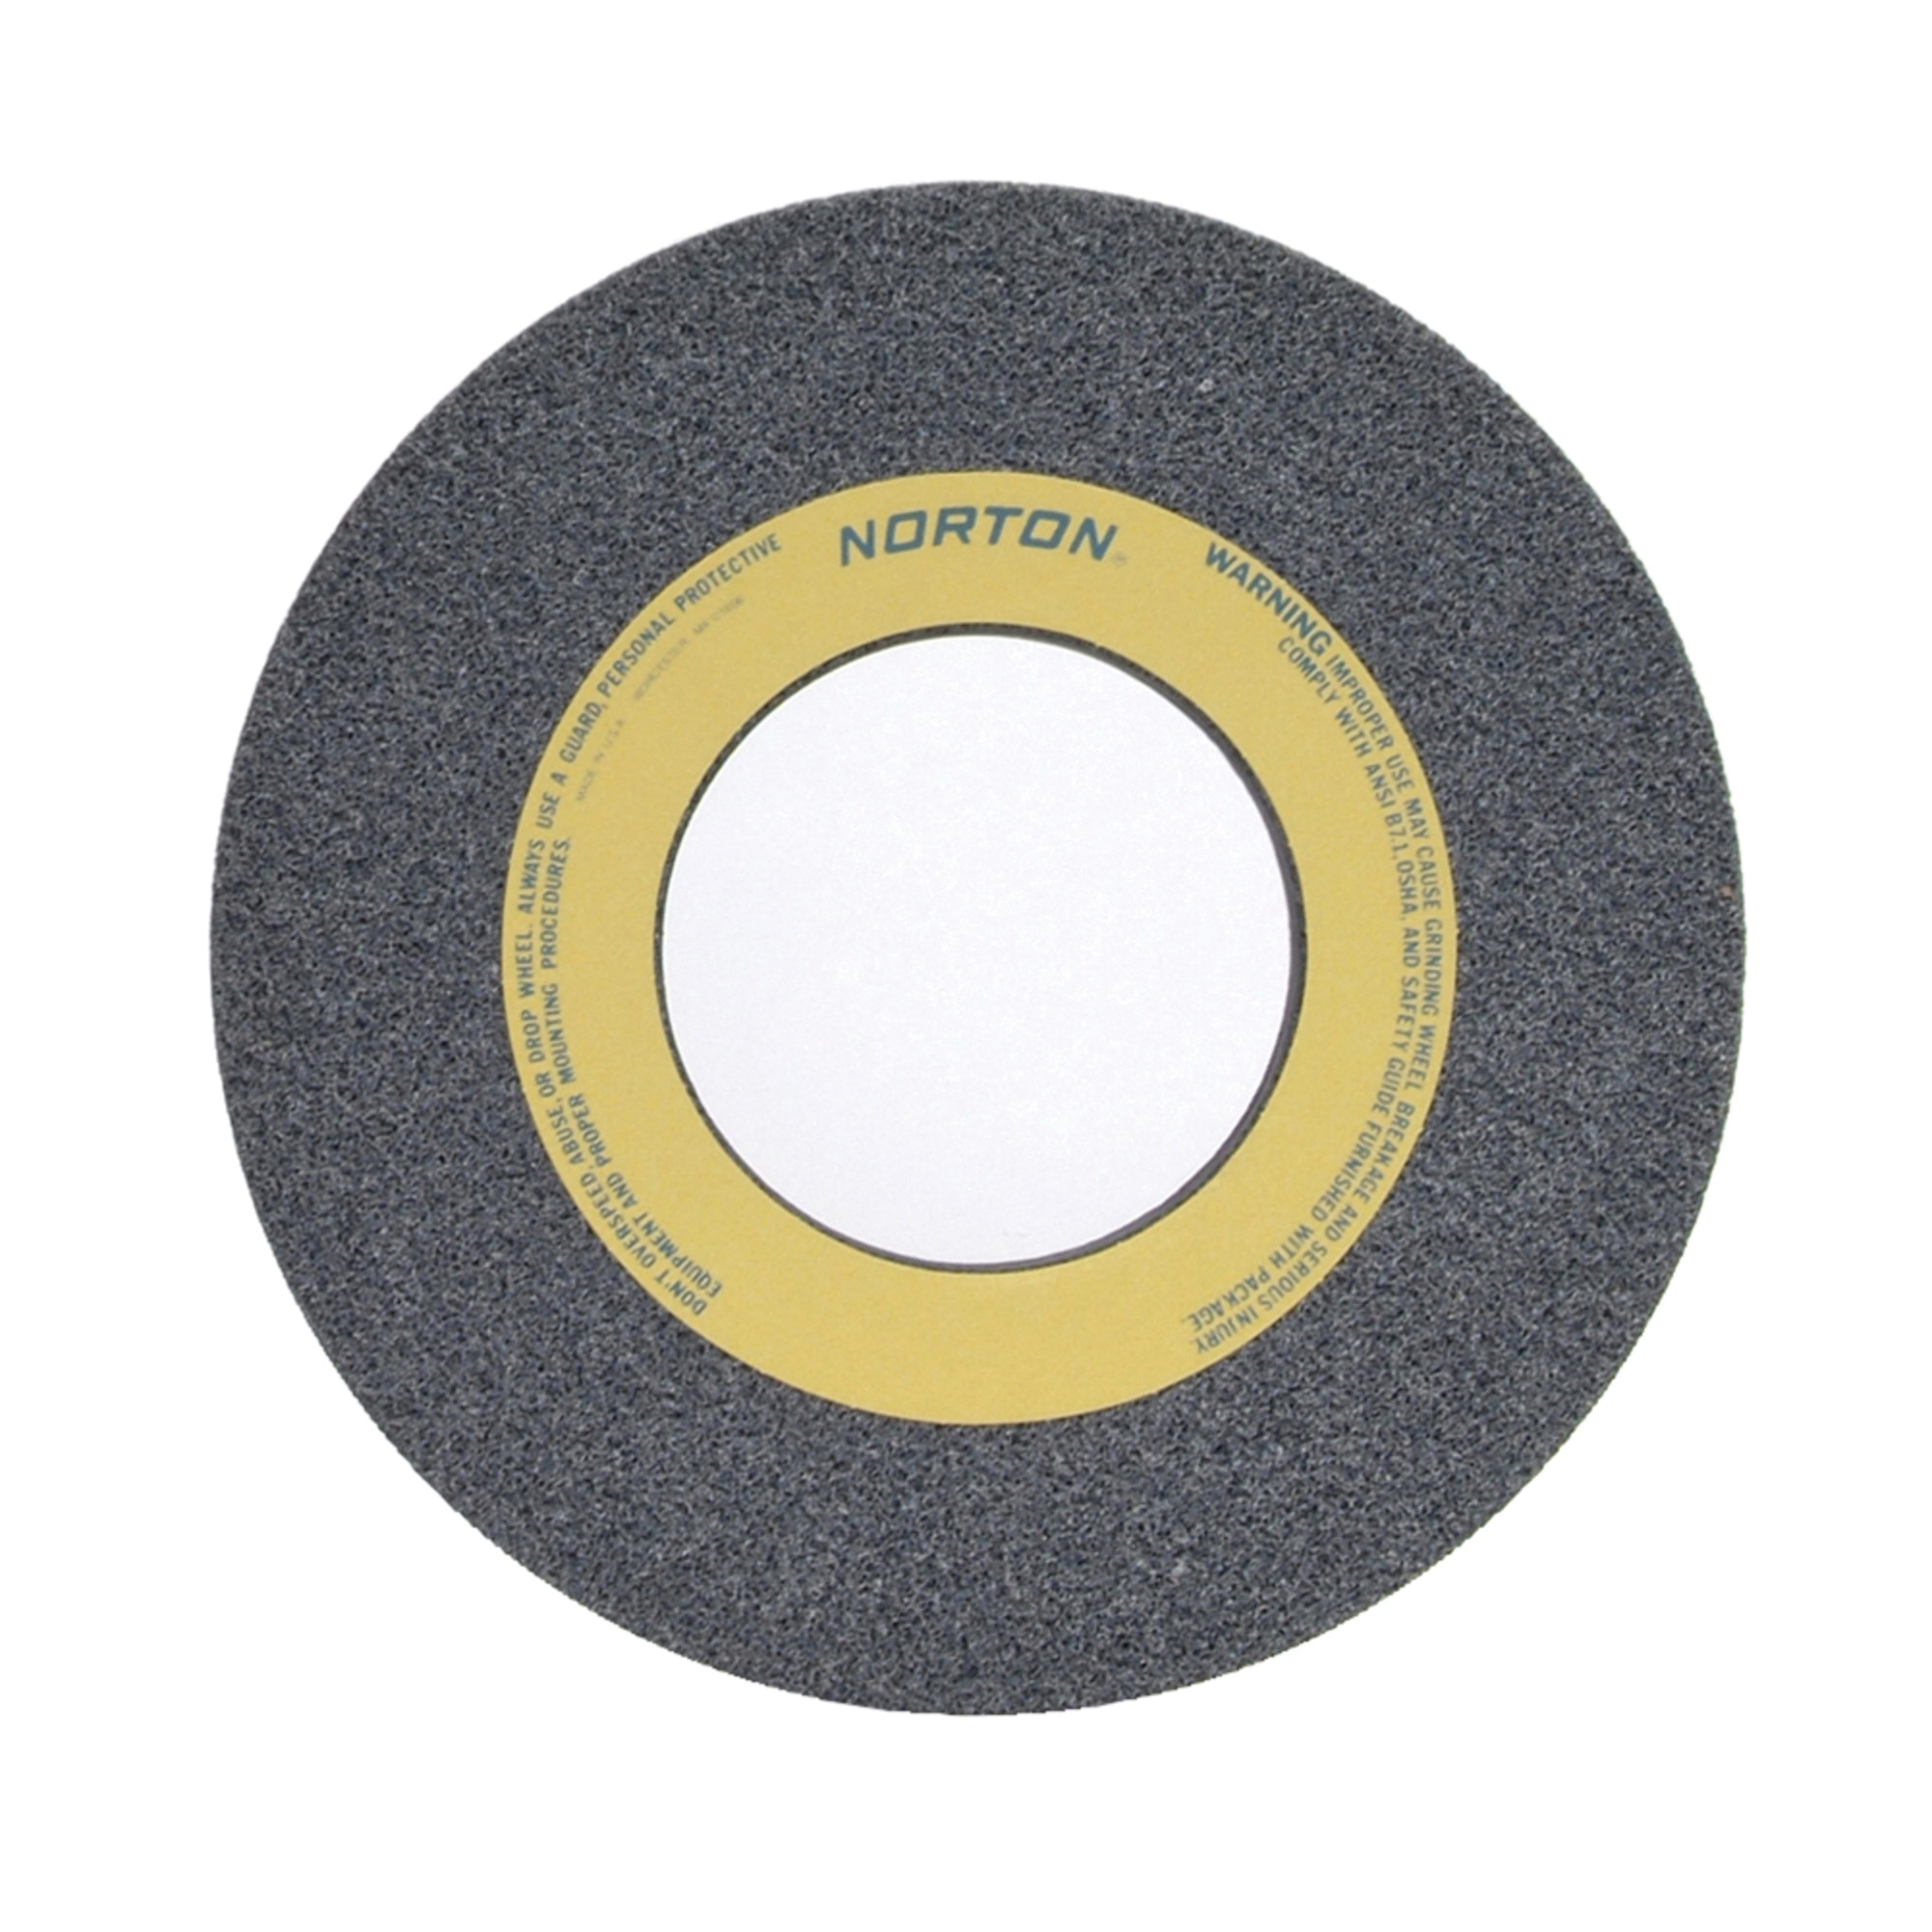 Norton® 66253263149 32A Straight Toolroom Wheel, 12 in Dia x 1-1/2 in THK, 5 in Center Hole, 60 Grit, Aluminum Oxide Abrasive